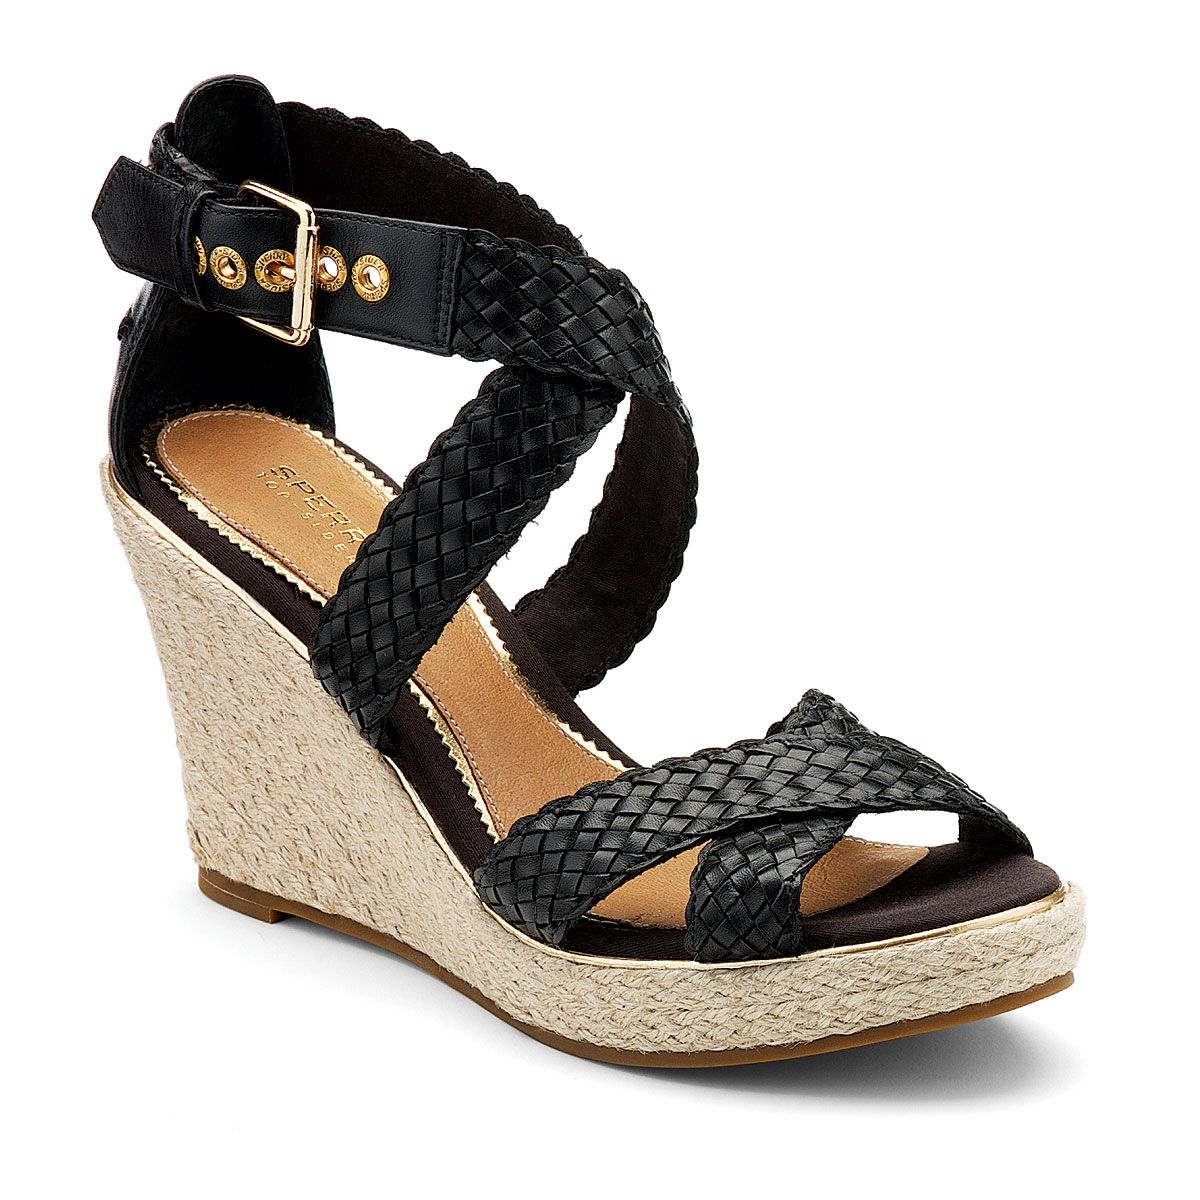 6b5cdb8a75 Sperry Top-Sider Womens Harbordale Wedge Sandal | My Style Pinboard ...